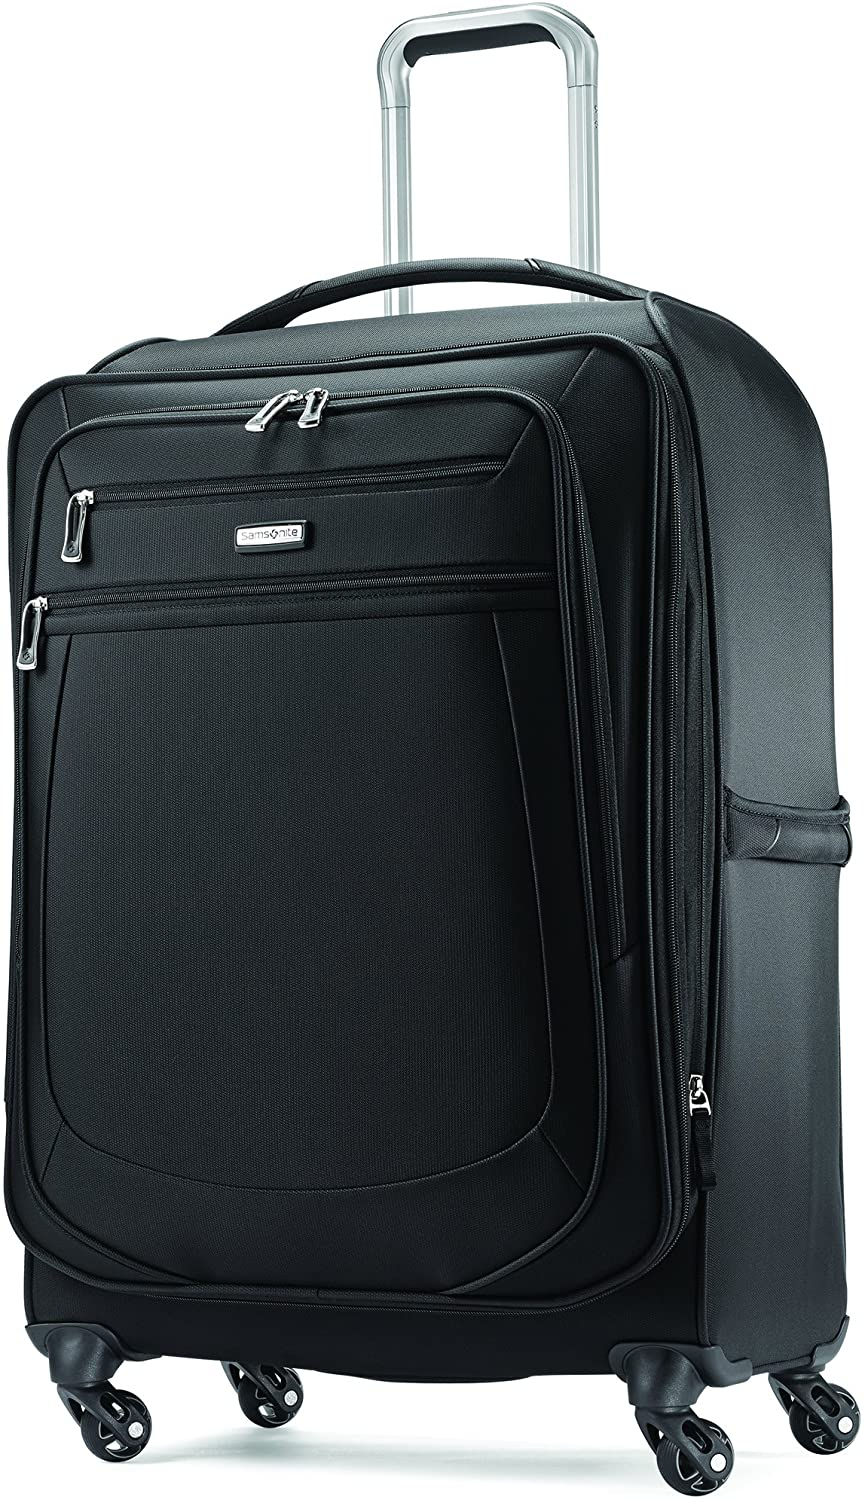 Samsonite Mightlight Softside Suitcase With Spinner Wheels, 30-Inch